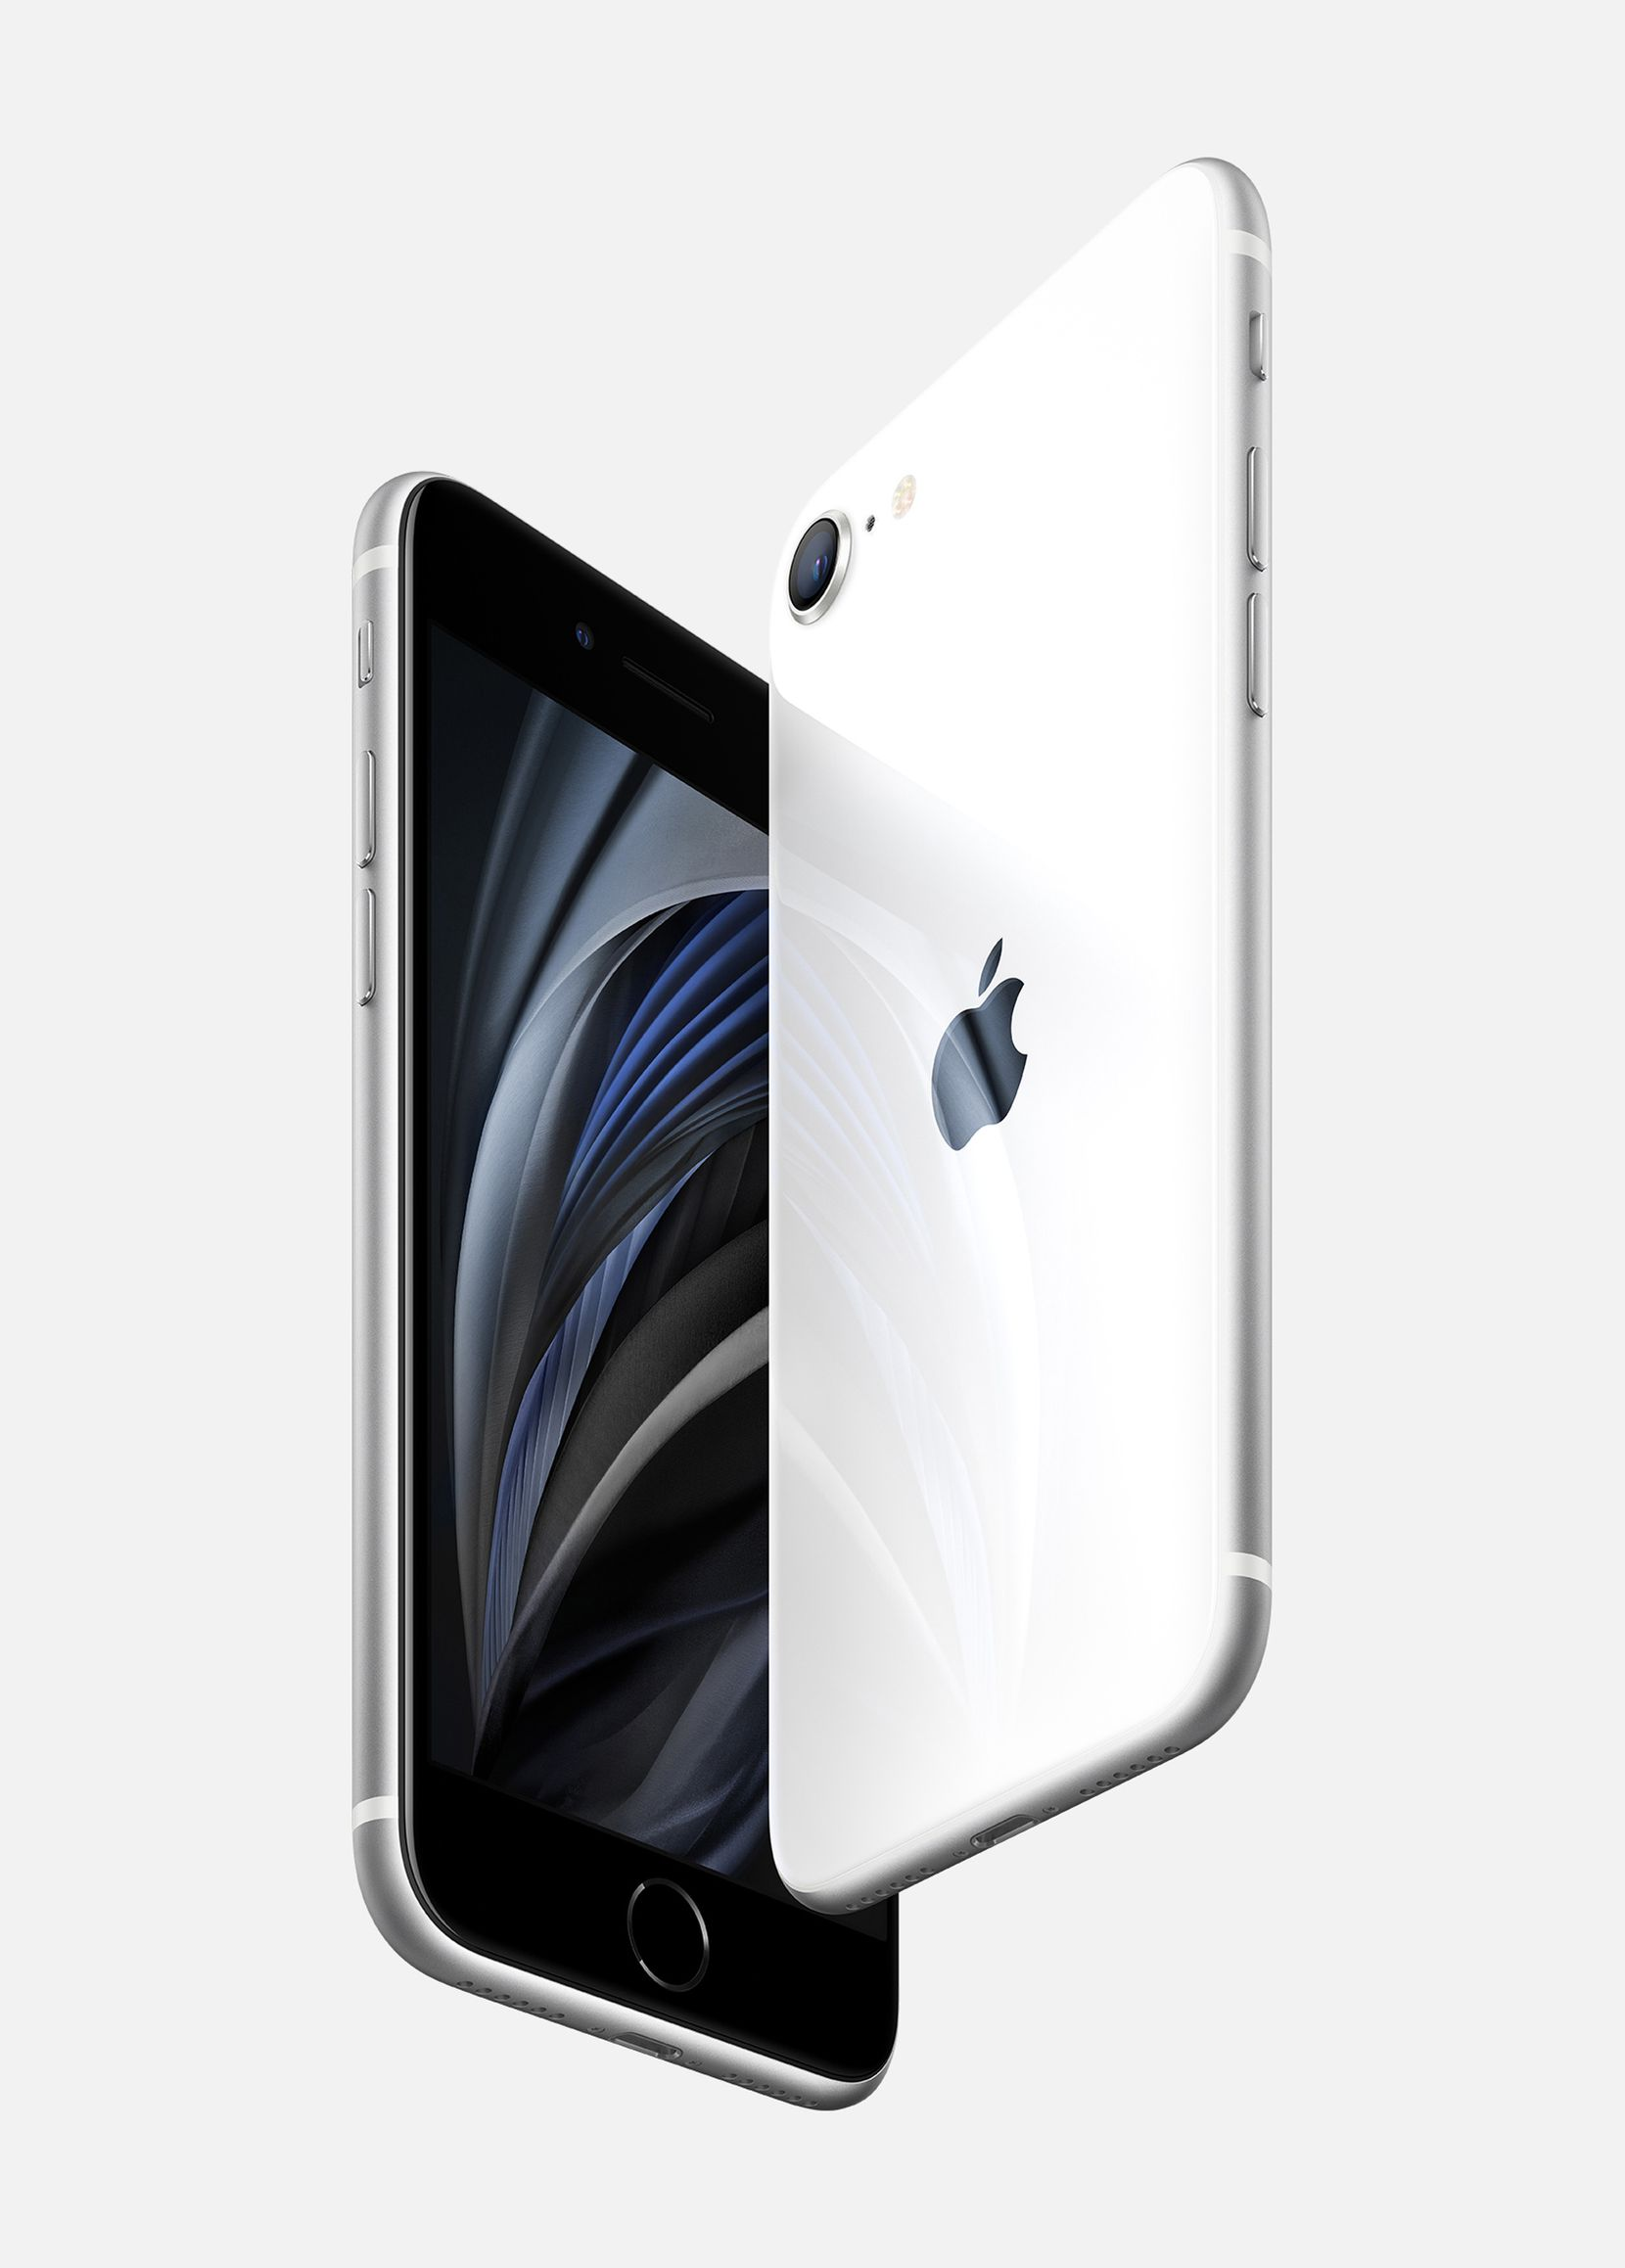 Apple's second-generation iPhone SE combines the body of the iPhone 8 with the processor of the iPhone 11.